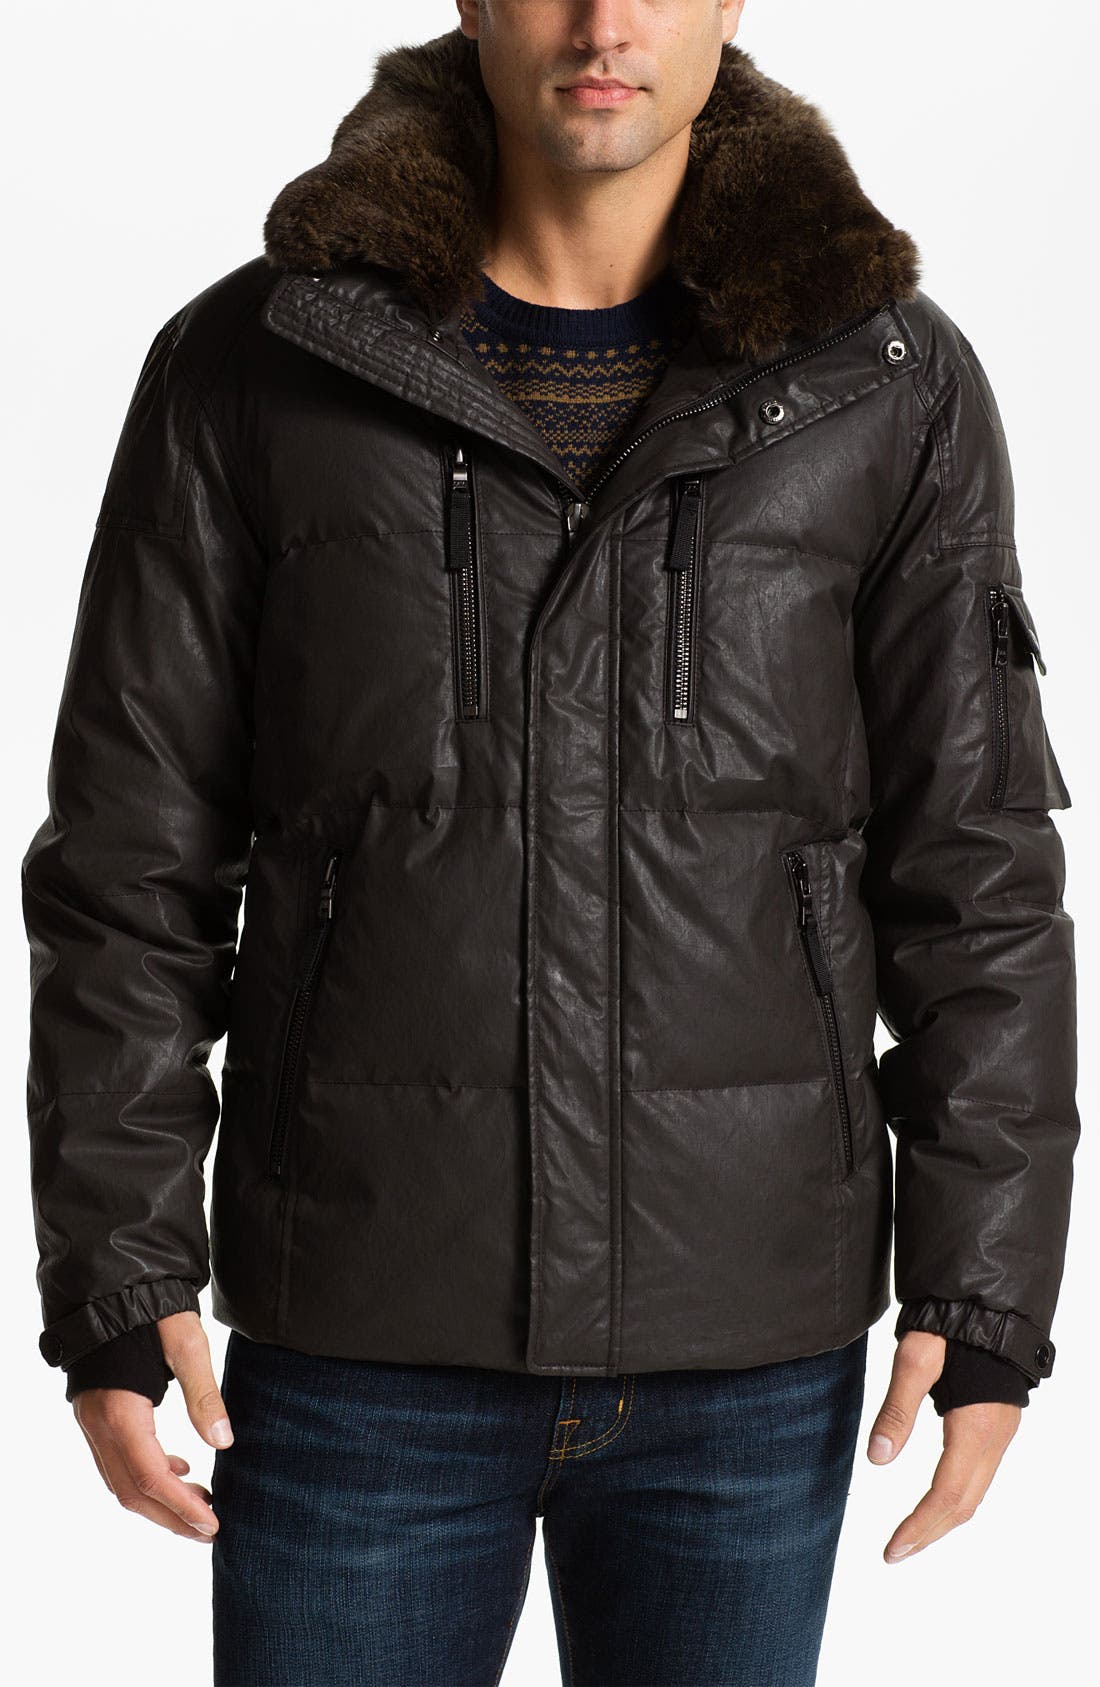 Main Image - Sam 'Hunter' Quilted Down Jacket with Genuine Rabbit Trim